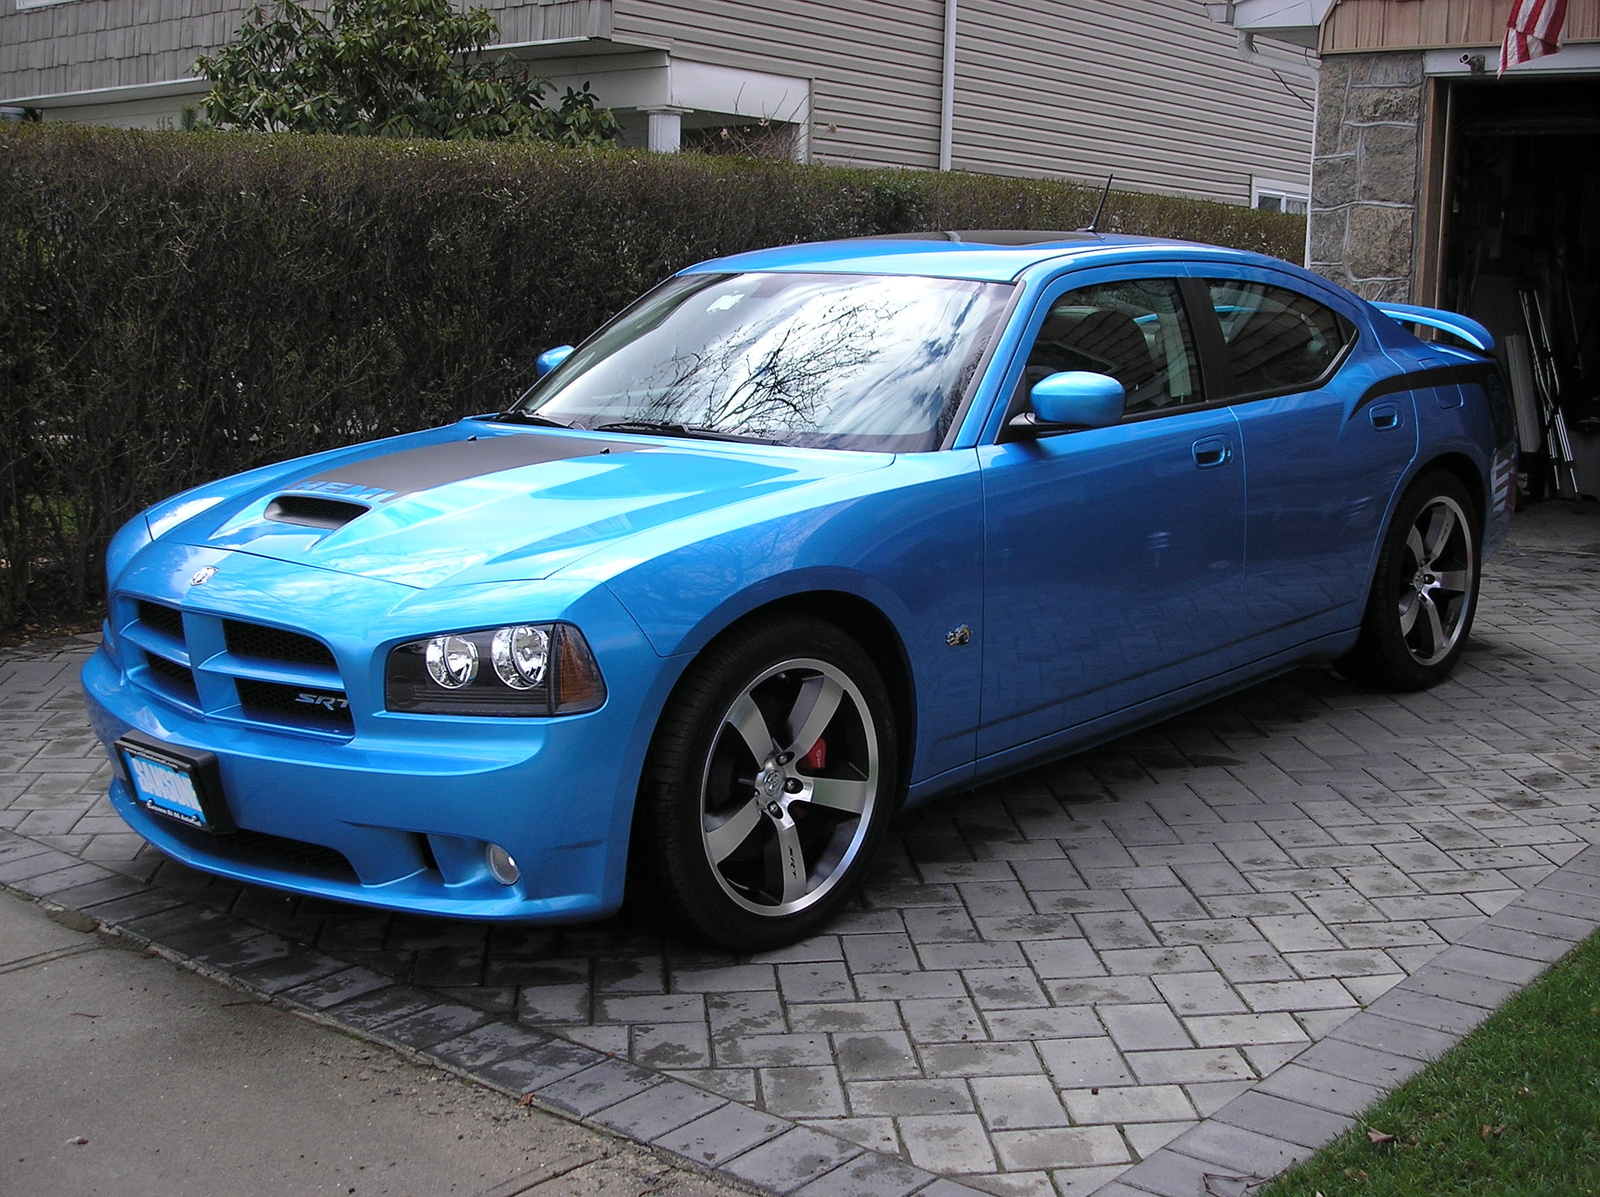 2006 dodge charger srt8 for sale autos post. Black Bedroom Furniture Sets. Home Design Ideas